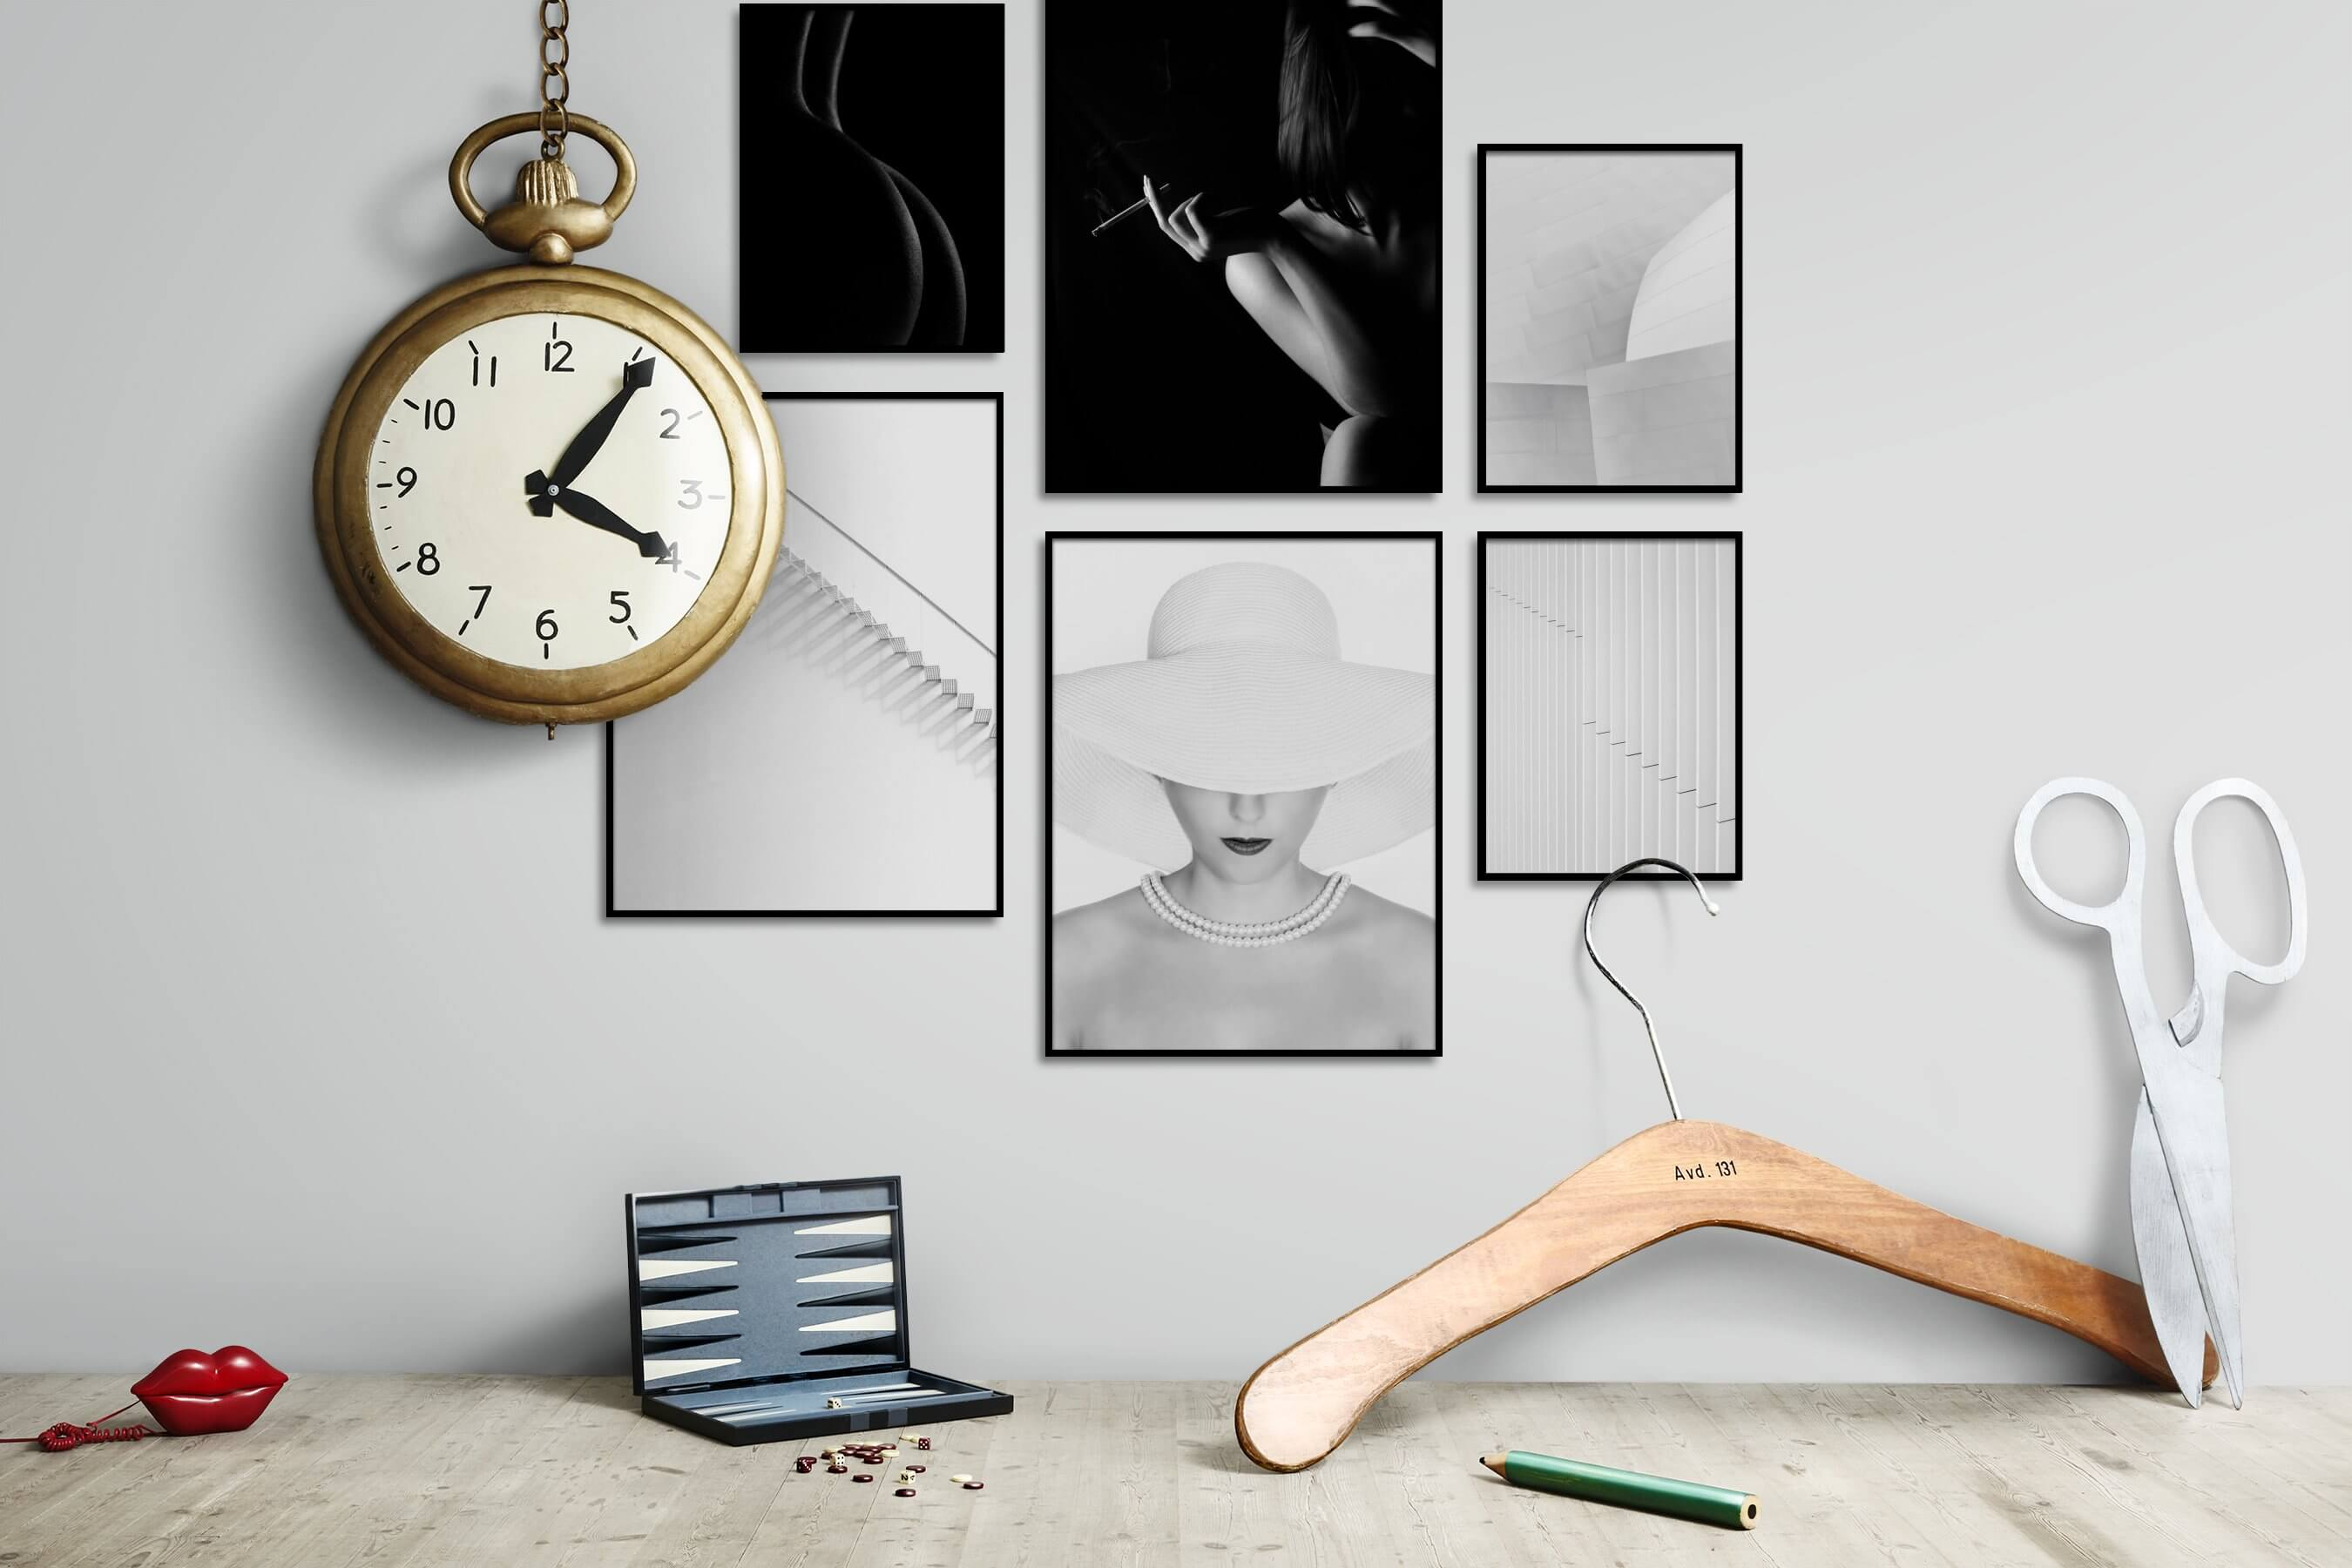 Gallery wall idea with six framed pictures arranged on a wall depicting Fashion & Beauty, Black & White, Dark Tones, For the Minimalist, Vintage, Bright Tones, and For the Moderate